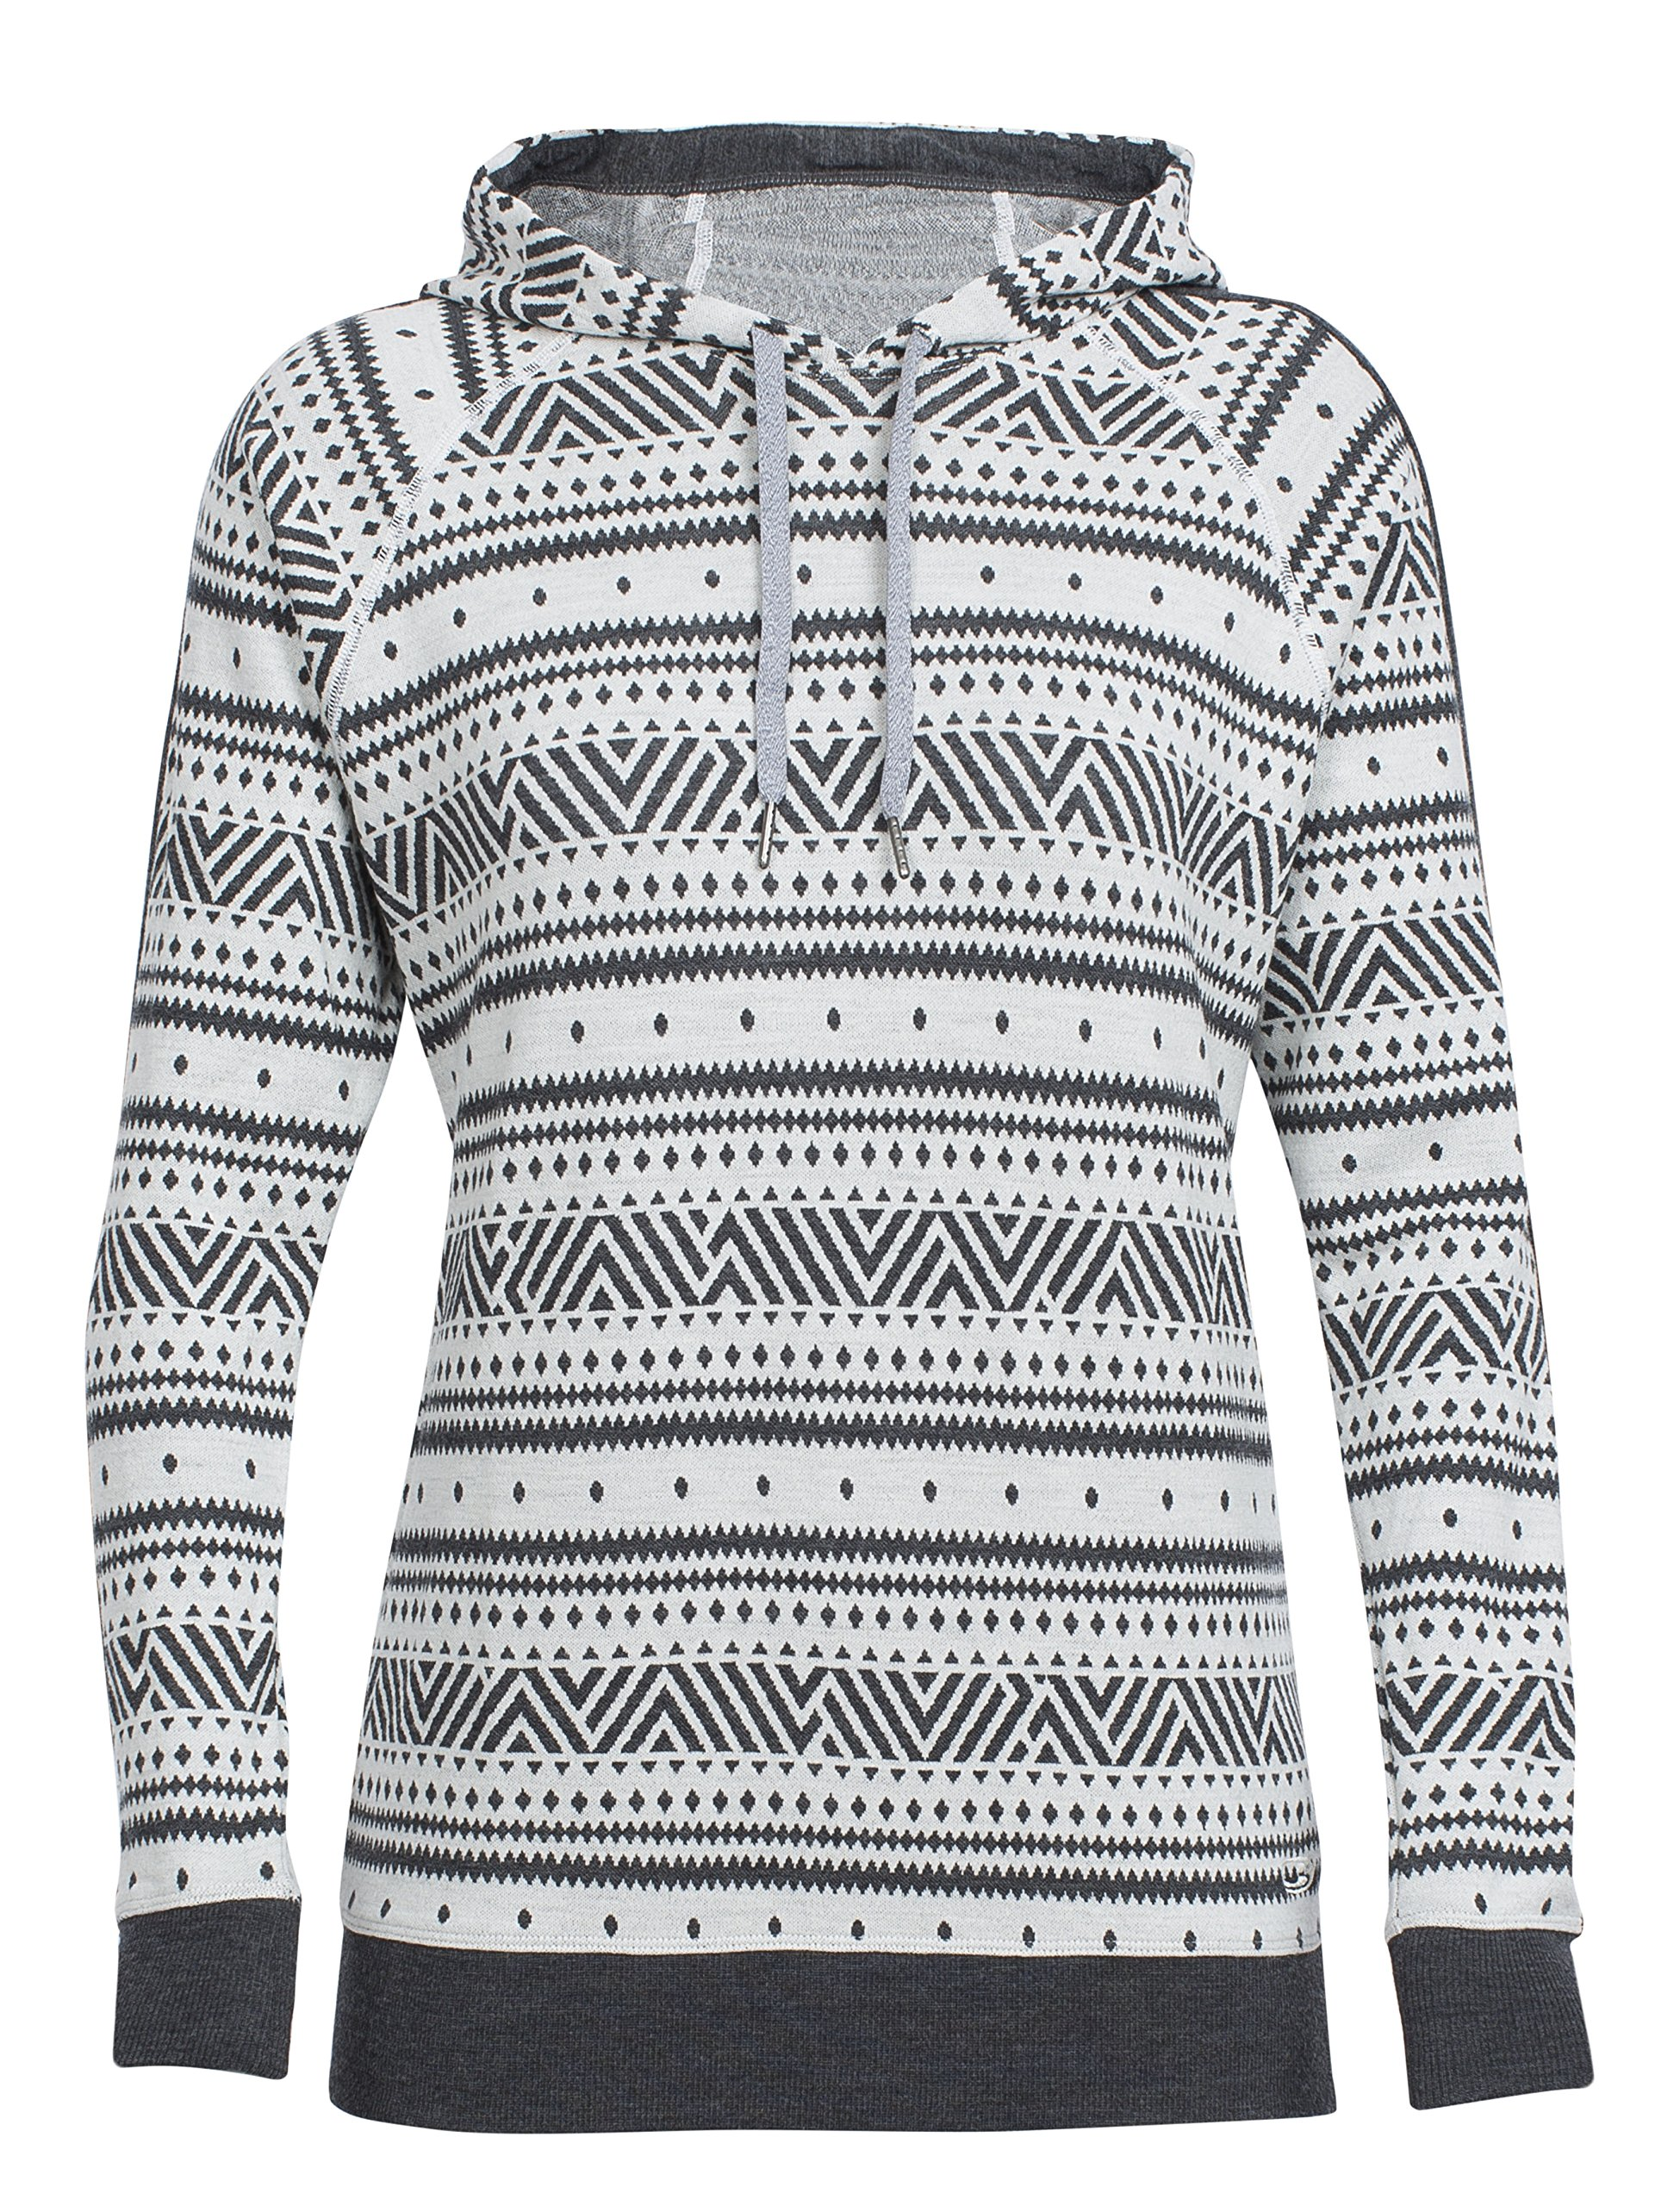 Icebreaker Merino Women's Meadow Icon Fairisle Long Sleeve Hoodie, Snow/Jet Heather/Snow, Small